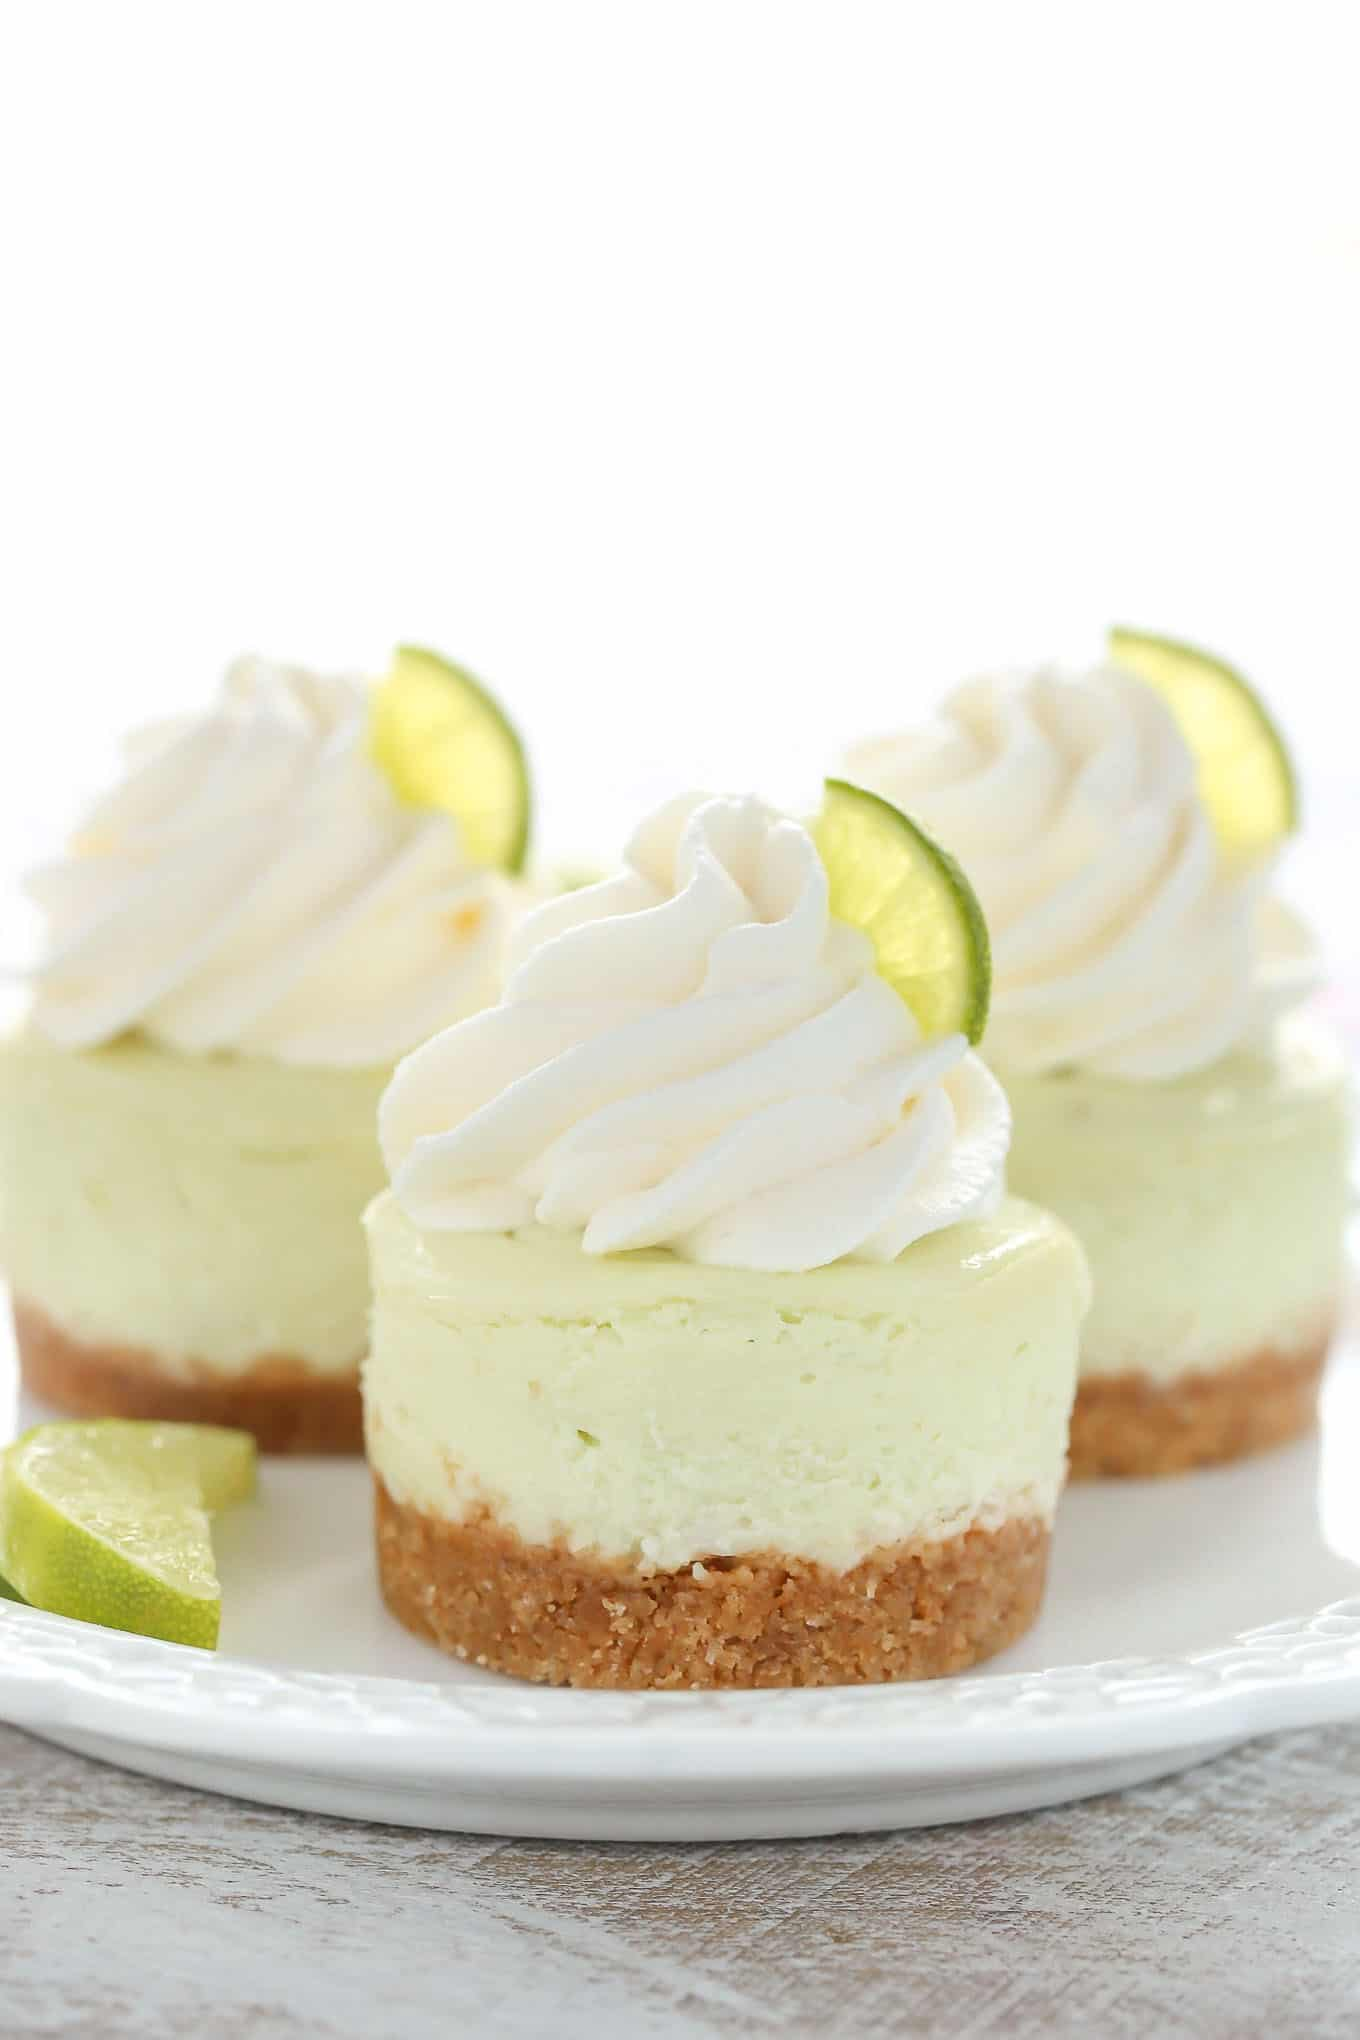 15 Lime Recipes Everyone Will Love- Mini Lime Cheesecakes